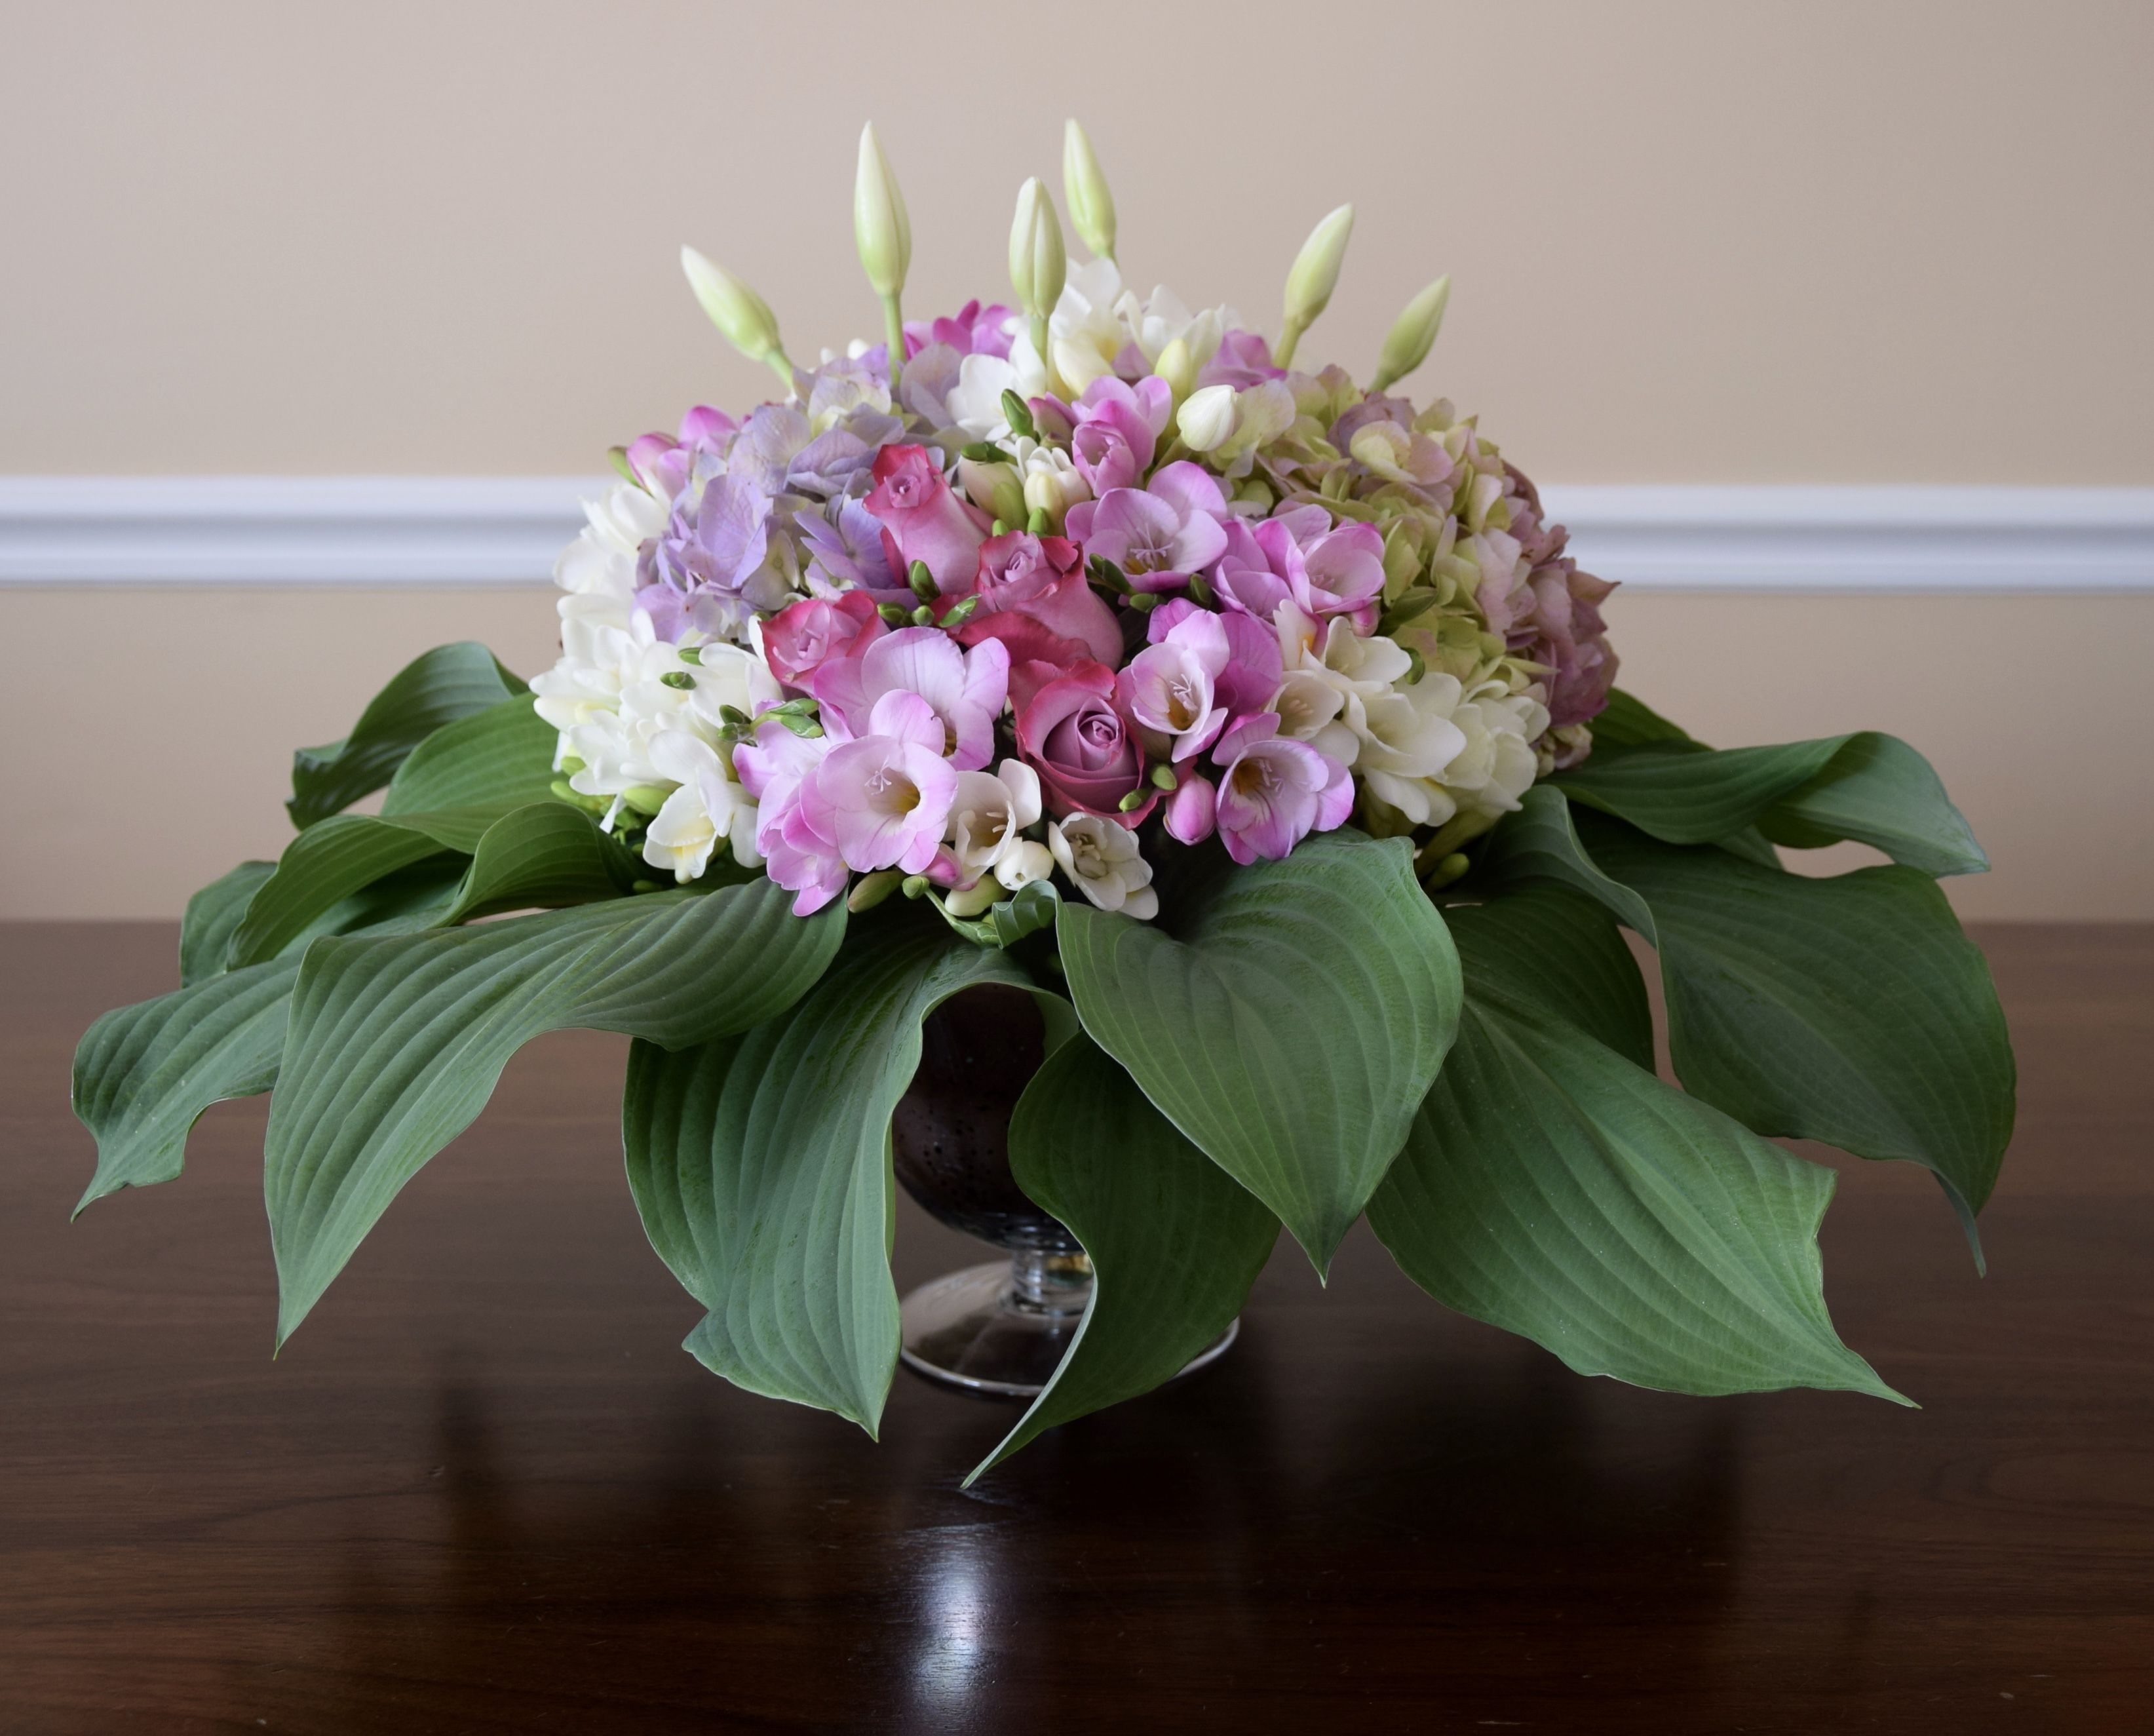 Thank you flower arrangement with lots of hydrangeas and freesias thank you flower arrangement with lots of hydrangeas and freesias izmirmasajfo